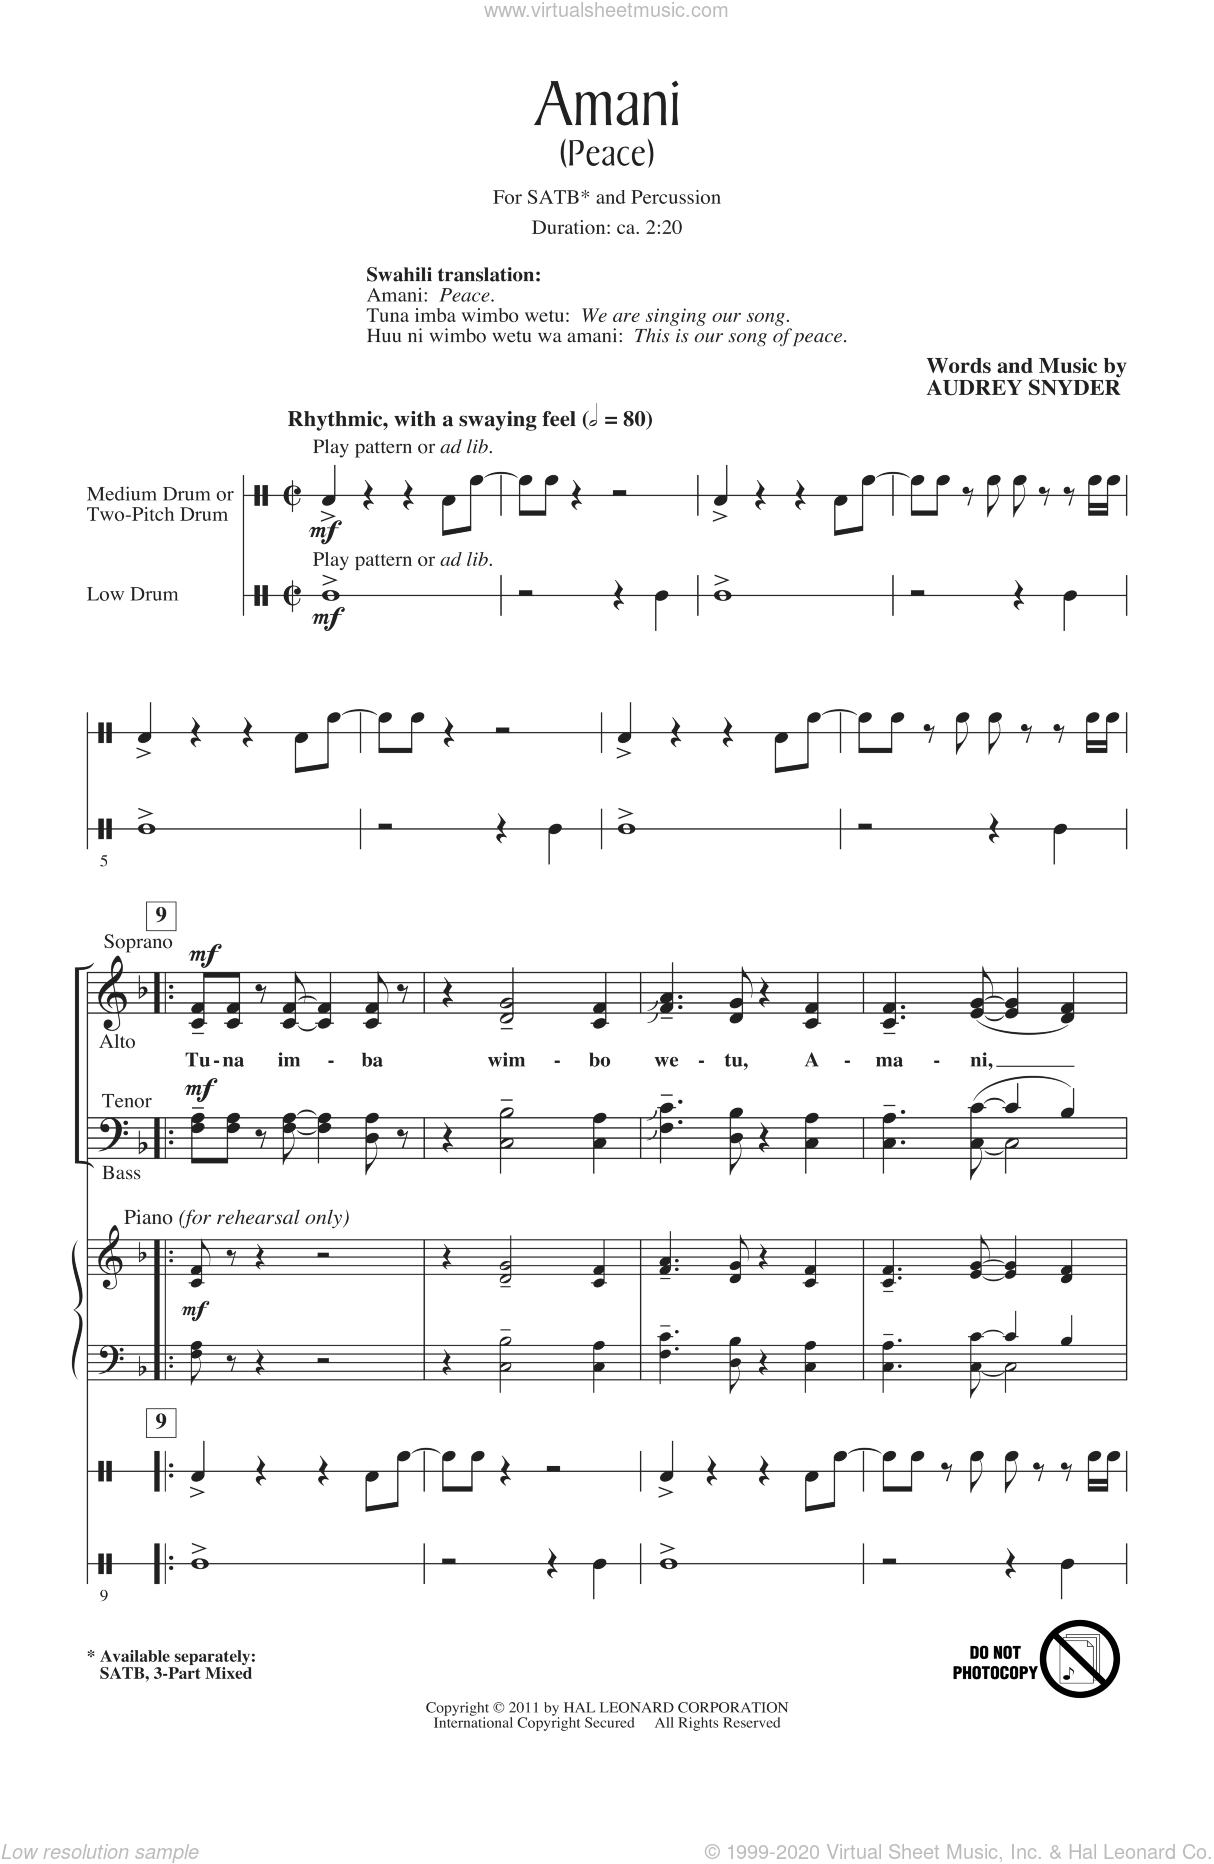 Amani (Peace) sheet music for choir (SATB: soprano, alto, tenor, bass) by Audrey Snyder, intermediate skill level